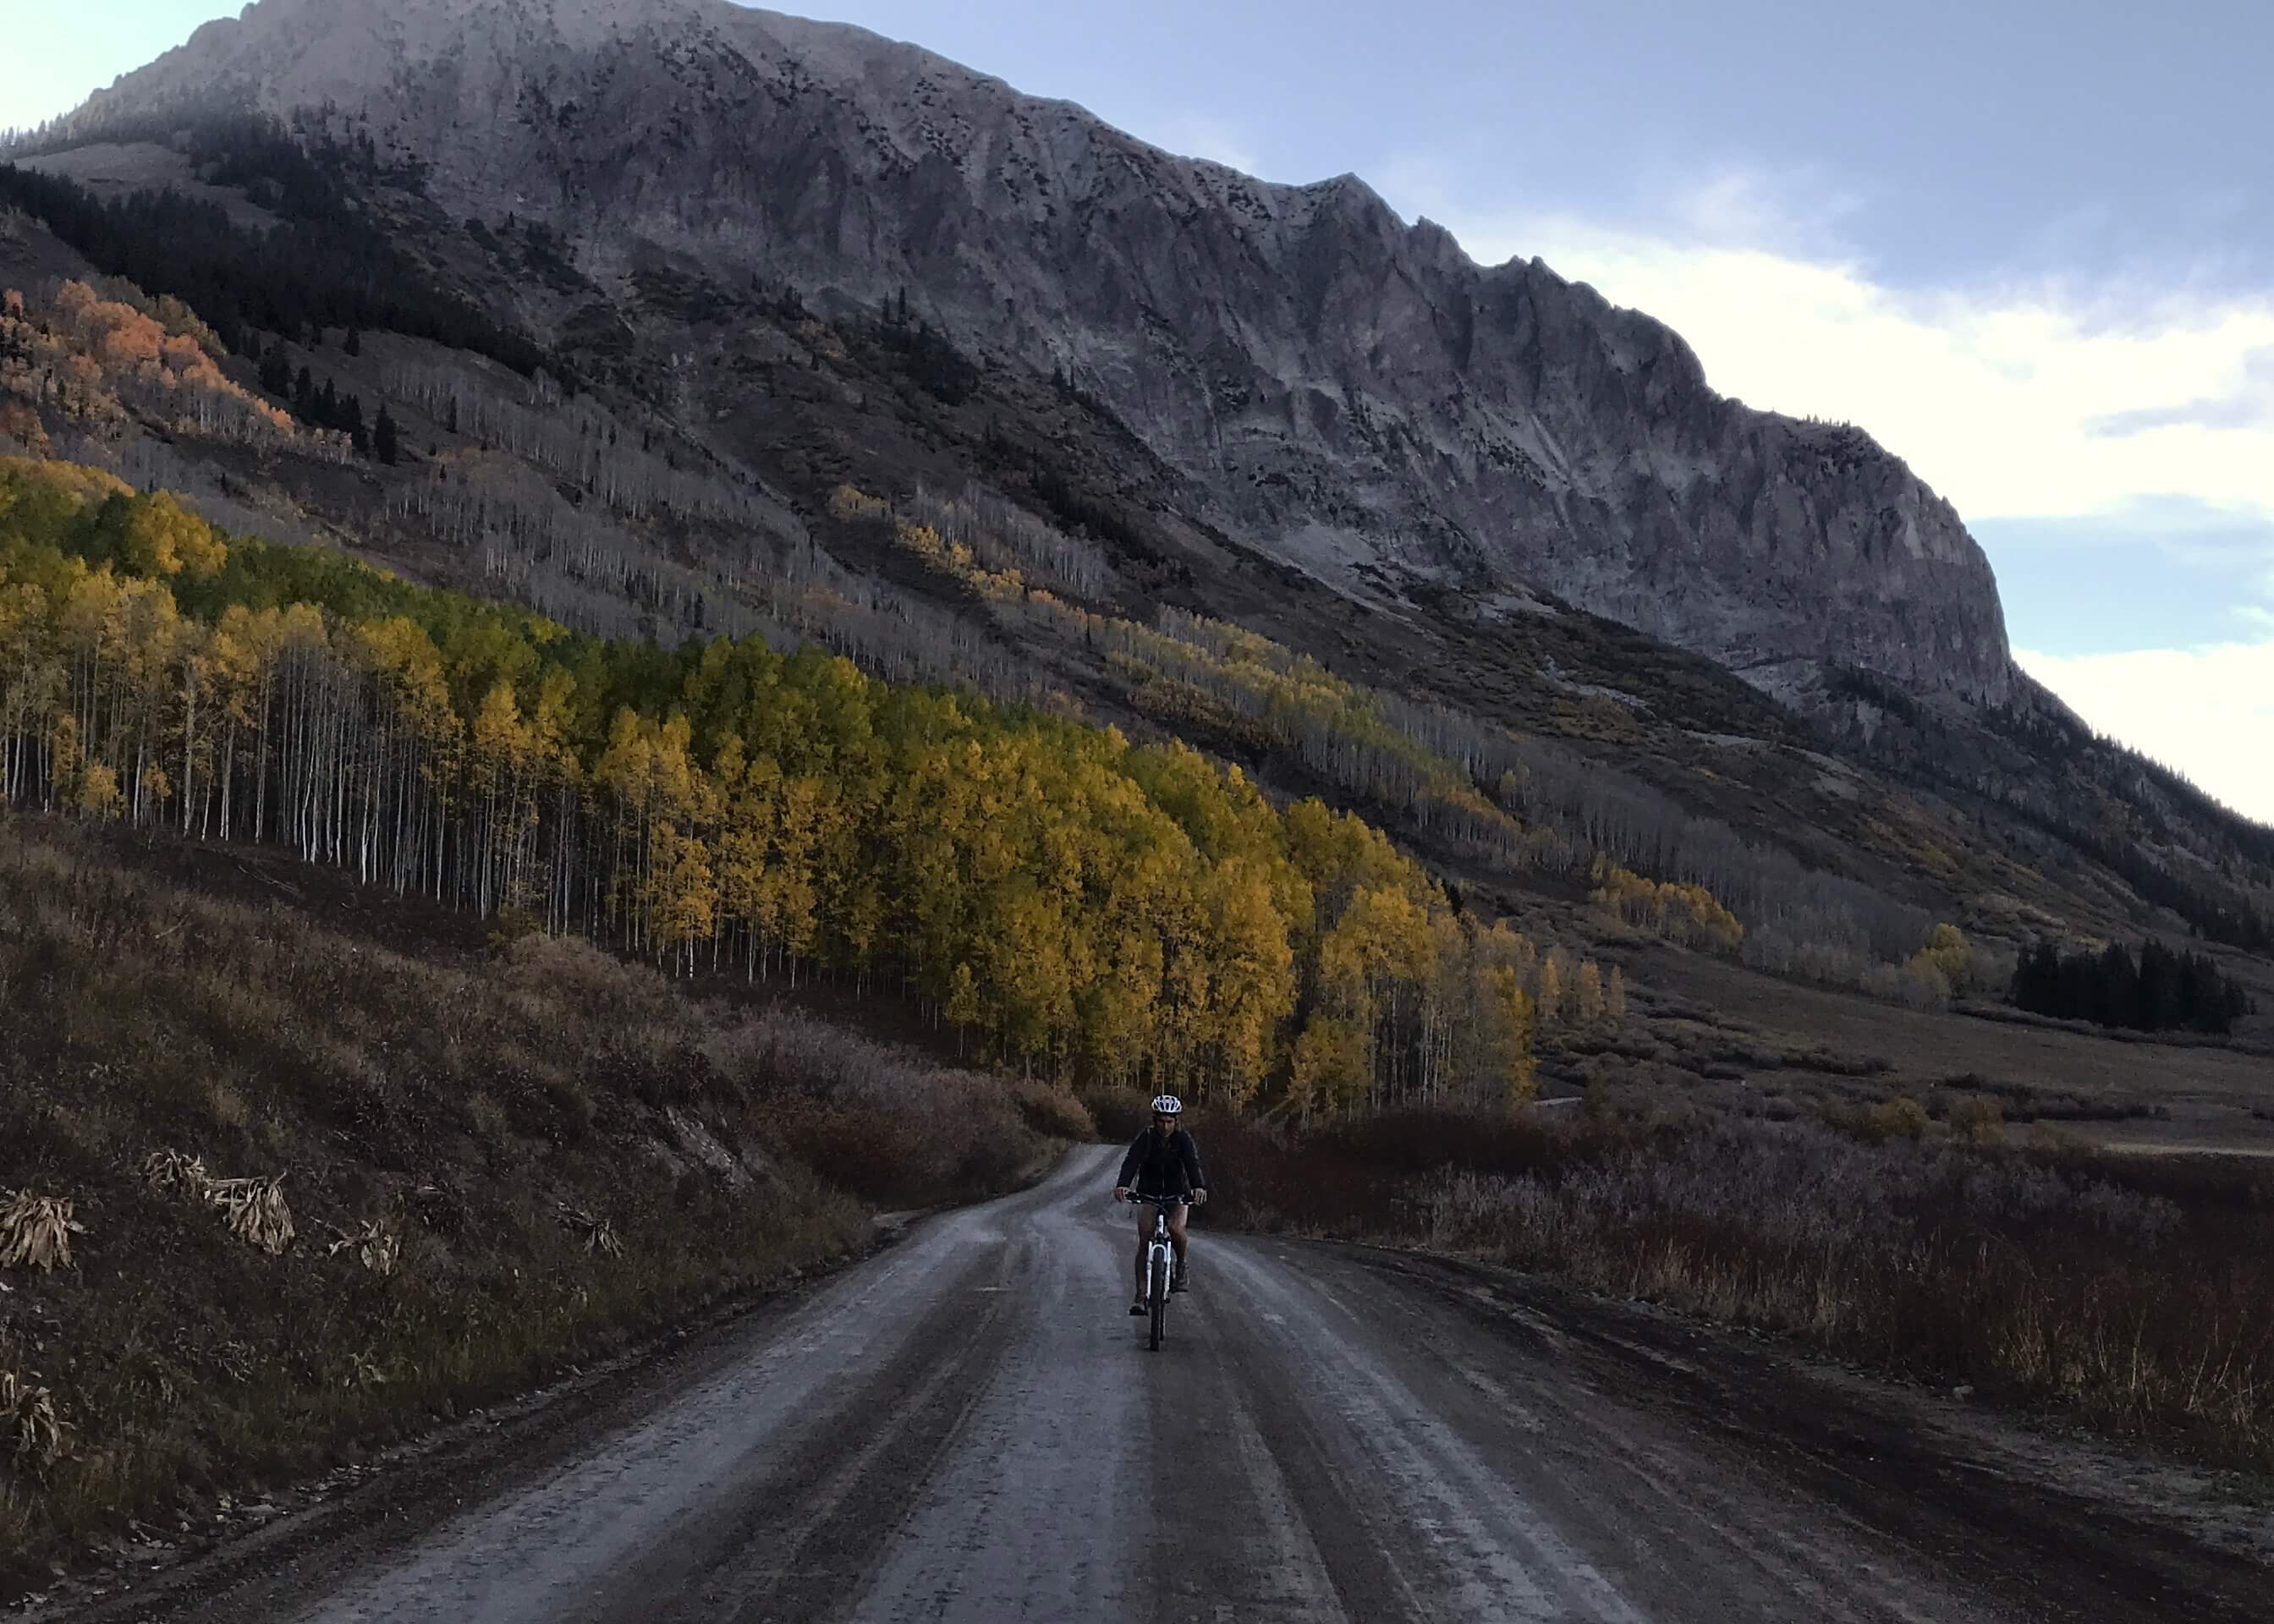 401 Trail, things to do in Crested Butte in October